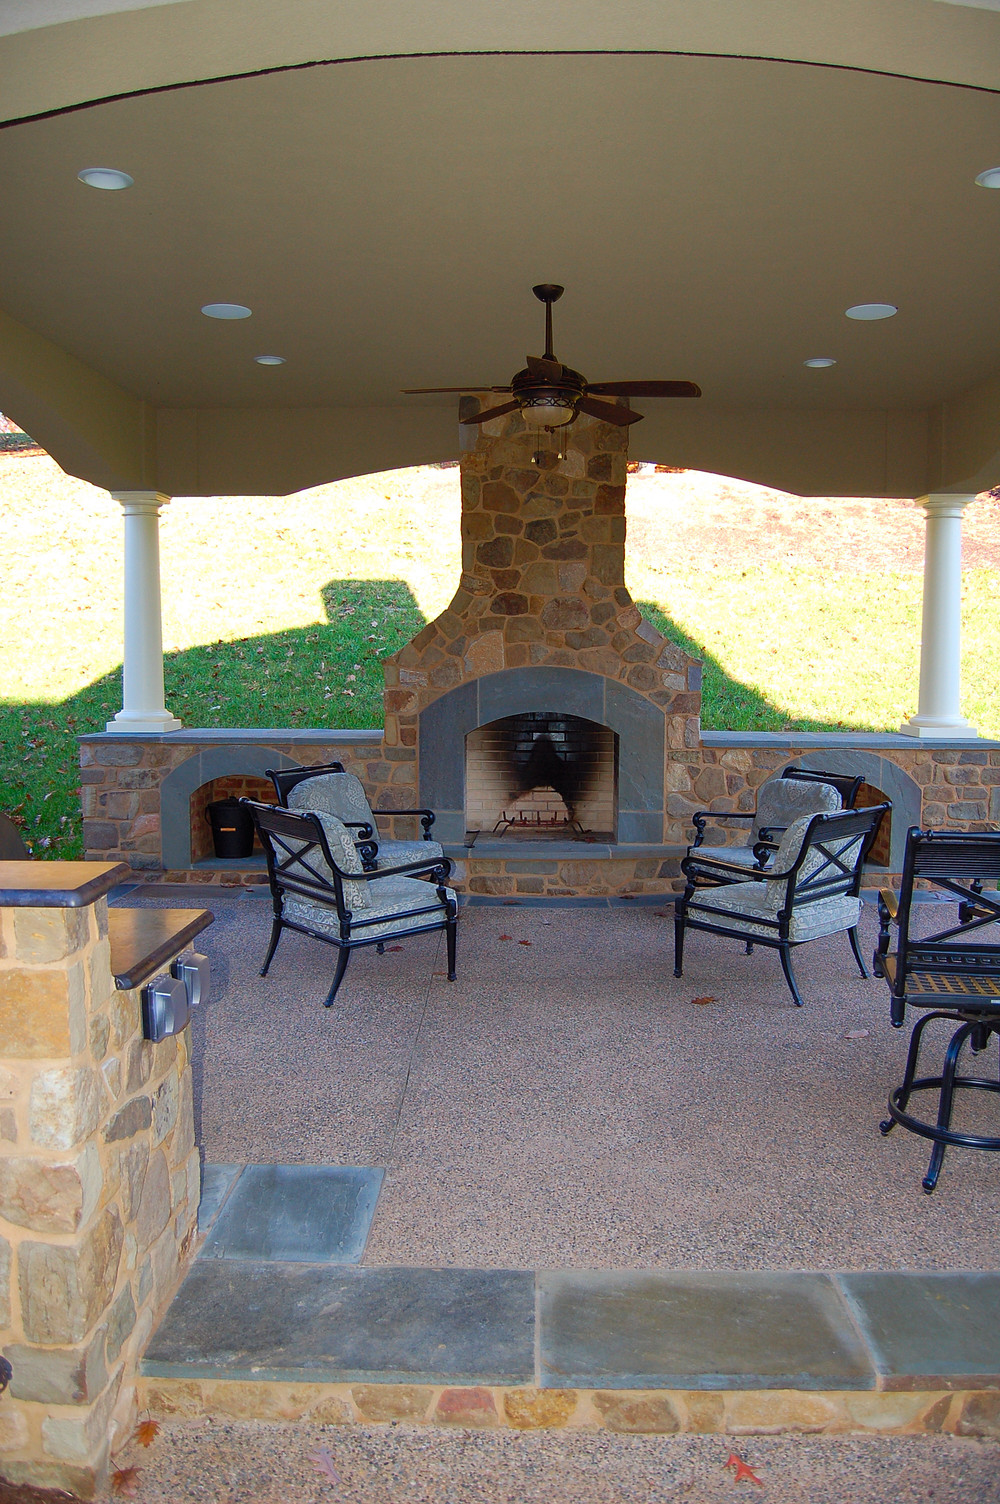 Covered outdoor fireplace and ceiling fan